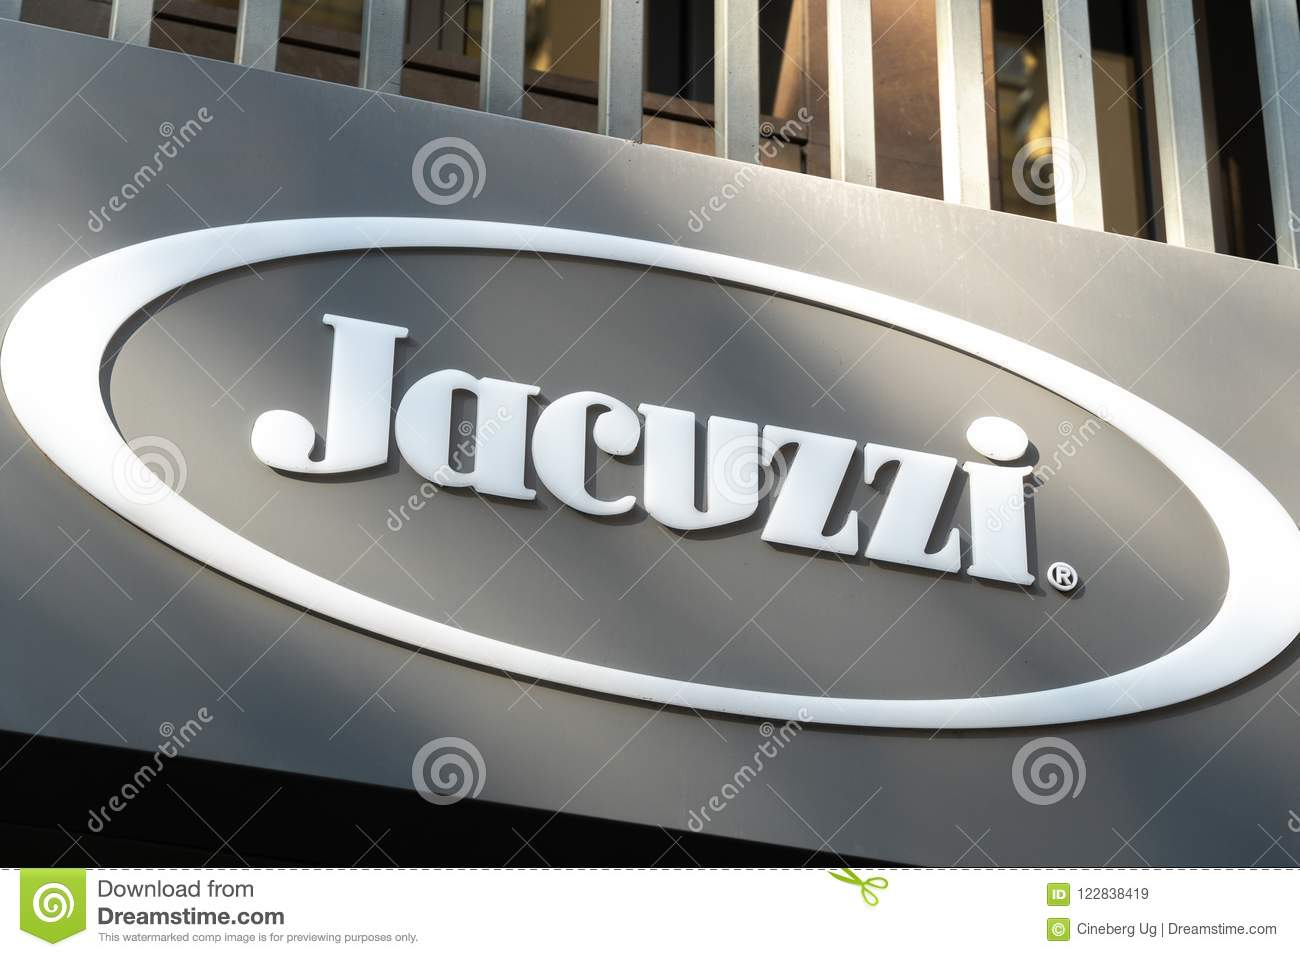 Jacuzzi store exterior editorial stock image. Image of nobody ...